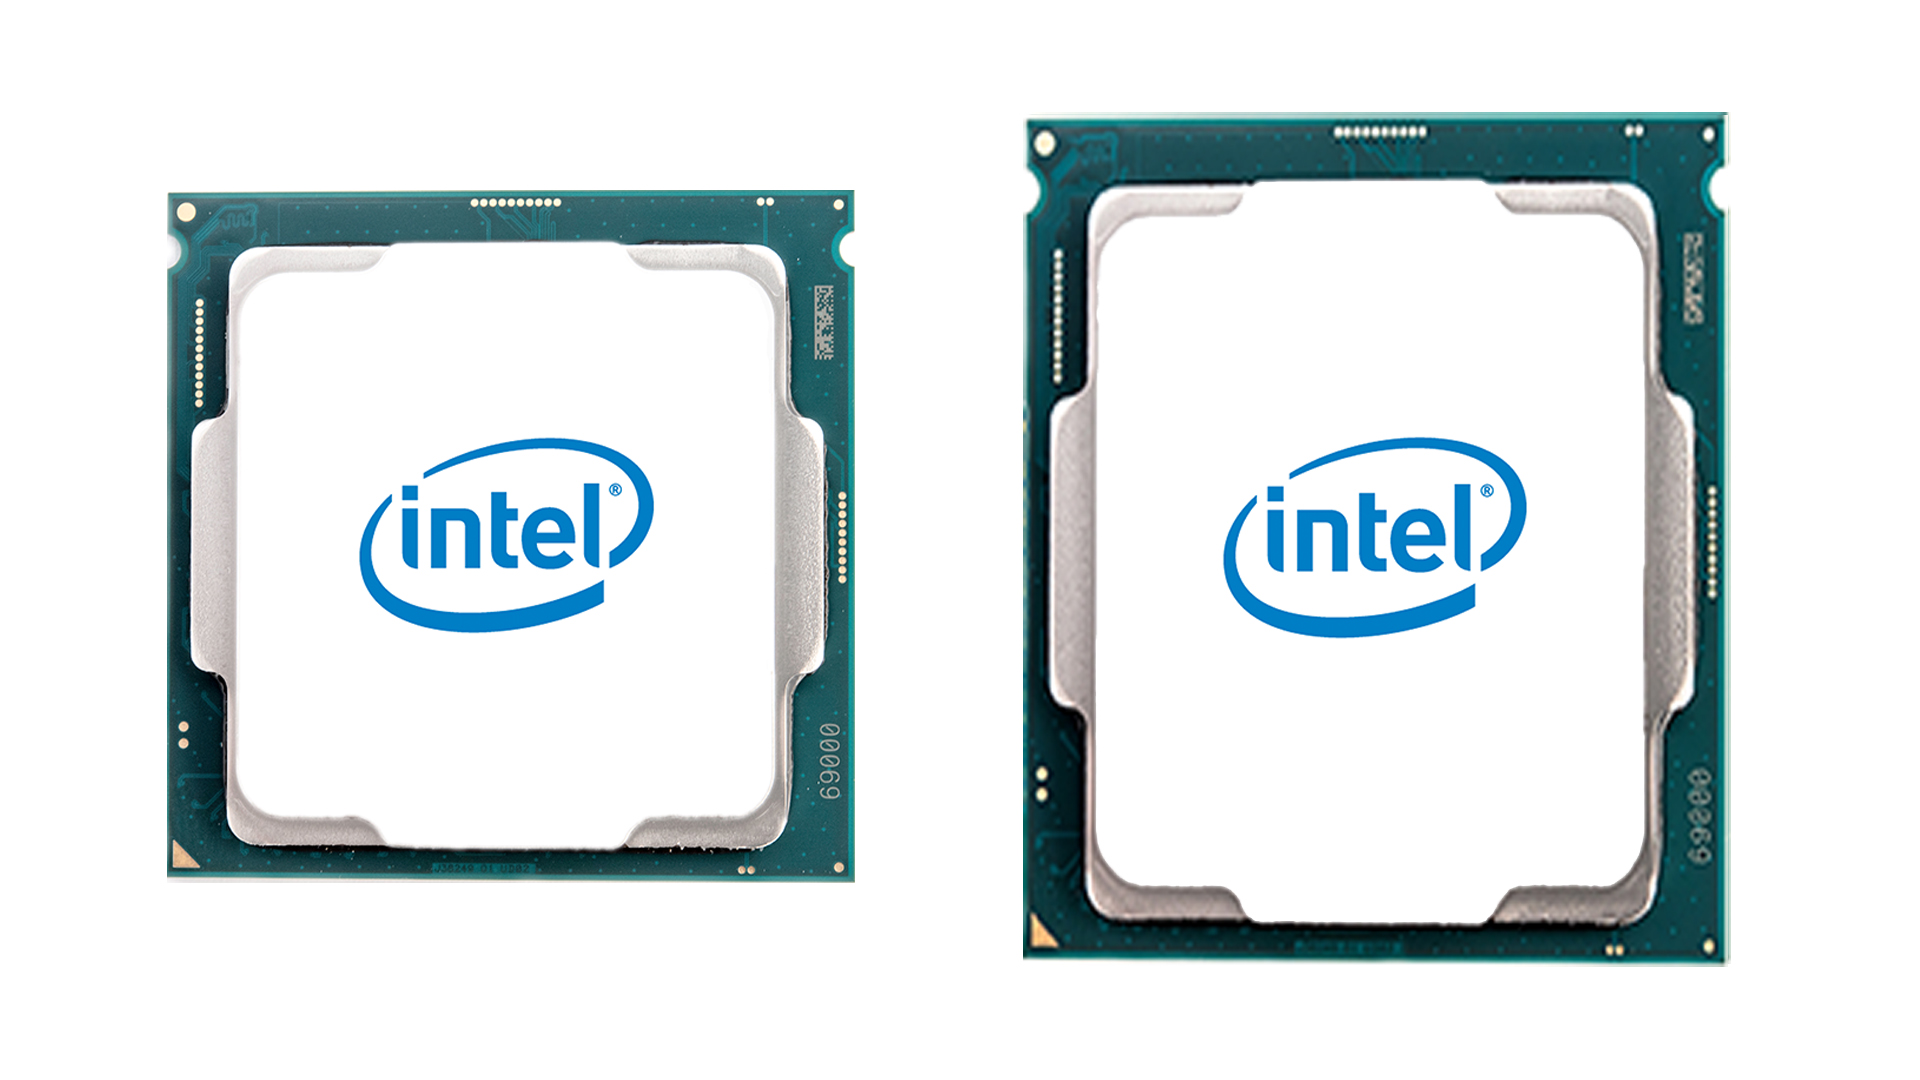 Early benchmarks of Intel's 12th gen CPUs are promising